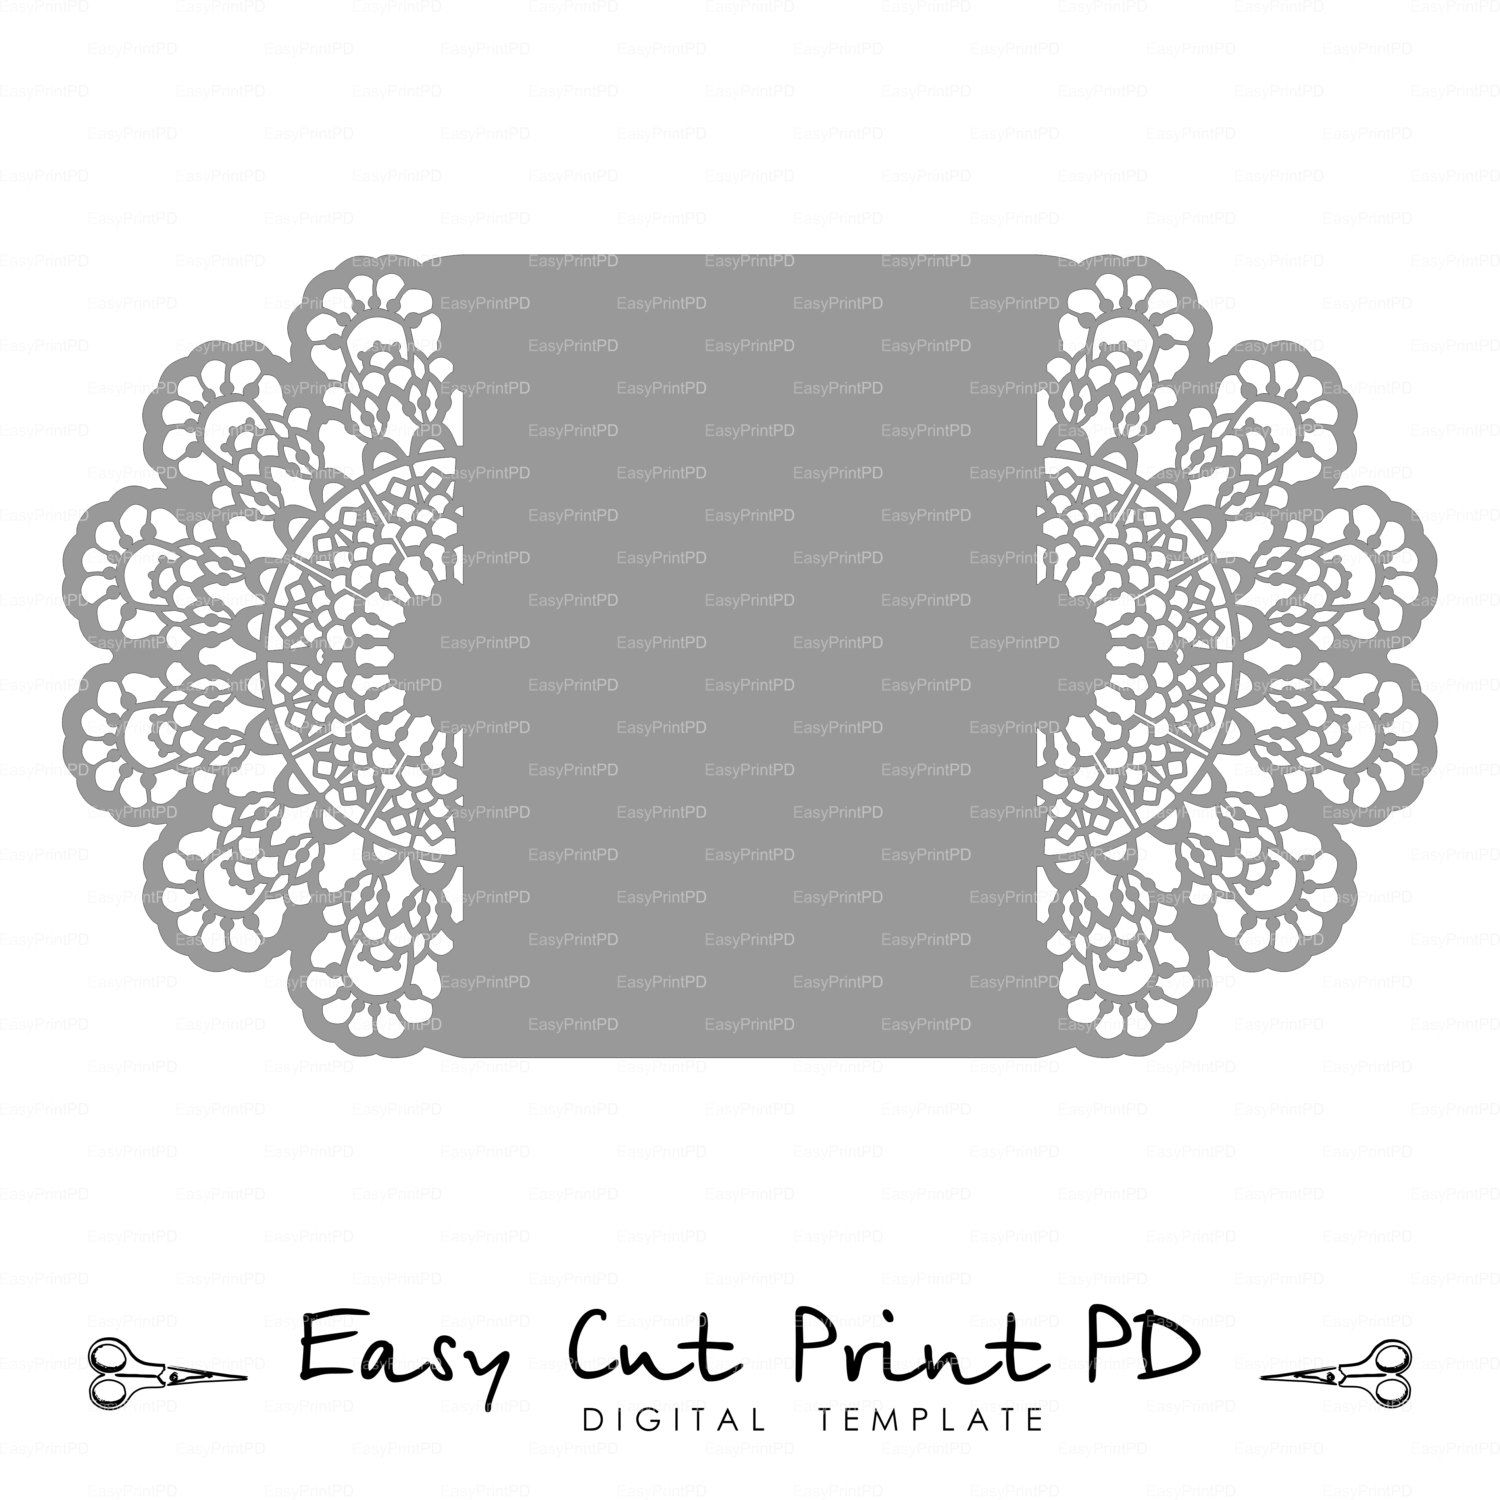 Lace Crochet Doily Wedding Invitation 5x7 Rustic о� Easycutprintpd: Black Doily Wedding Invitations At Reisefeber.org